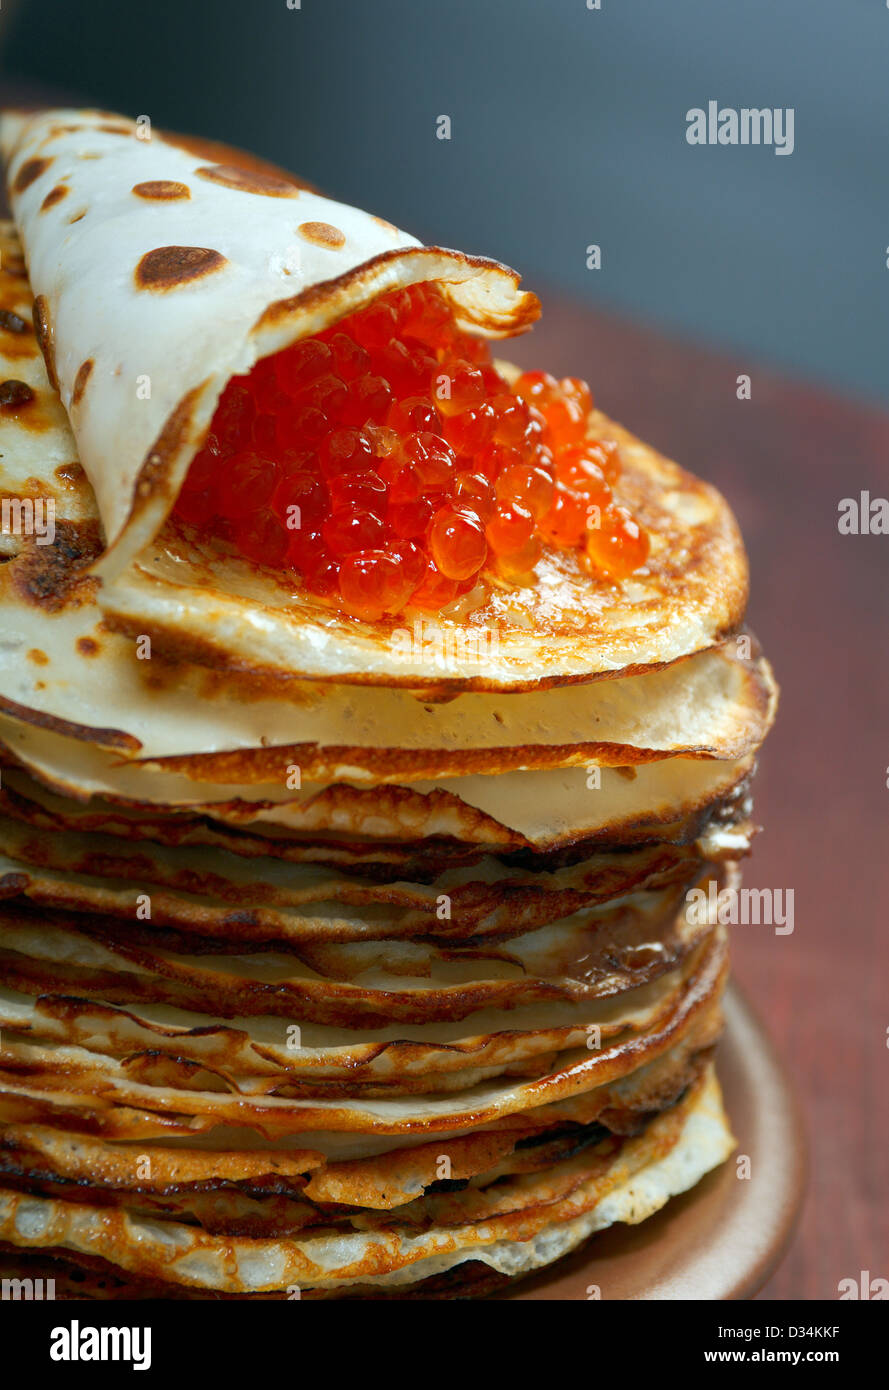 Traditional Russian pancakes with red caviar - Stock Image